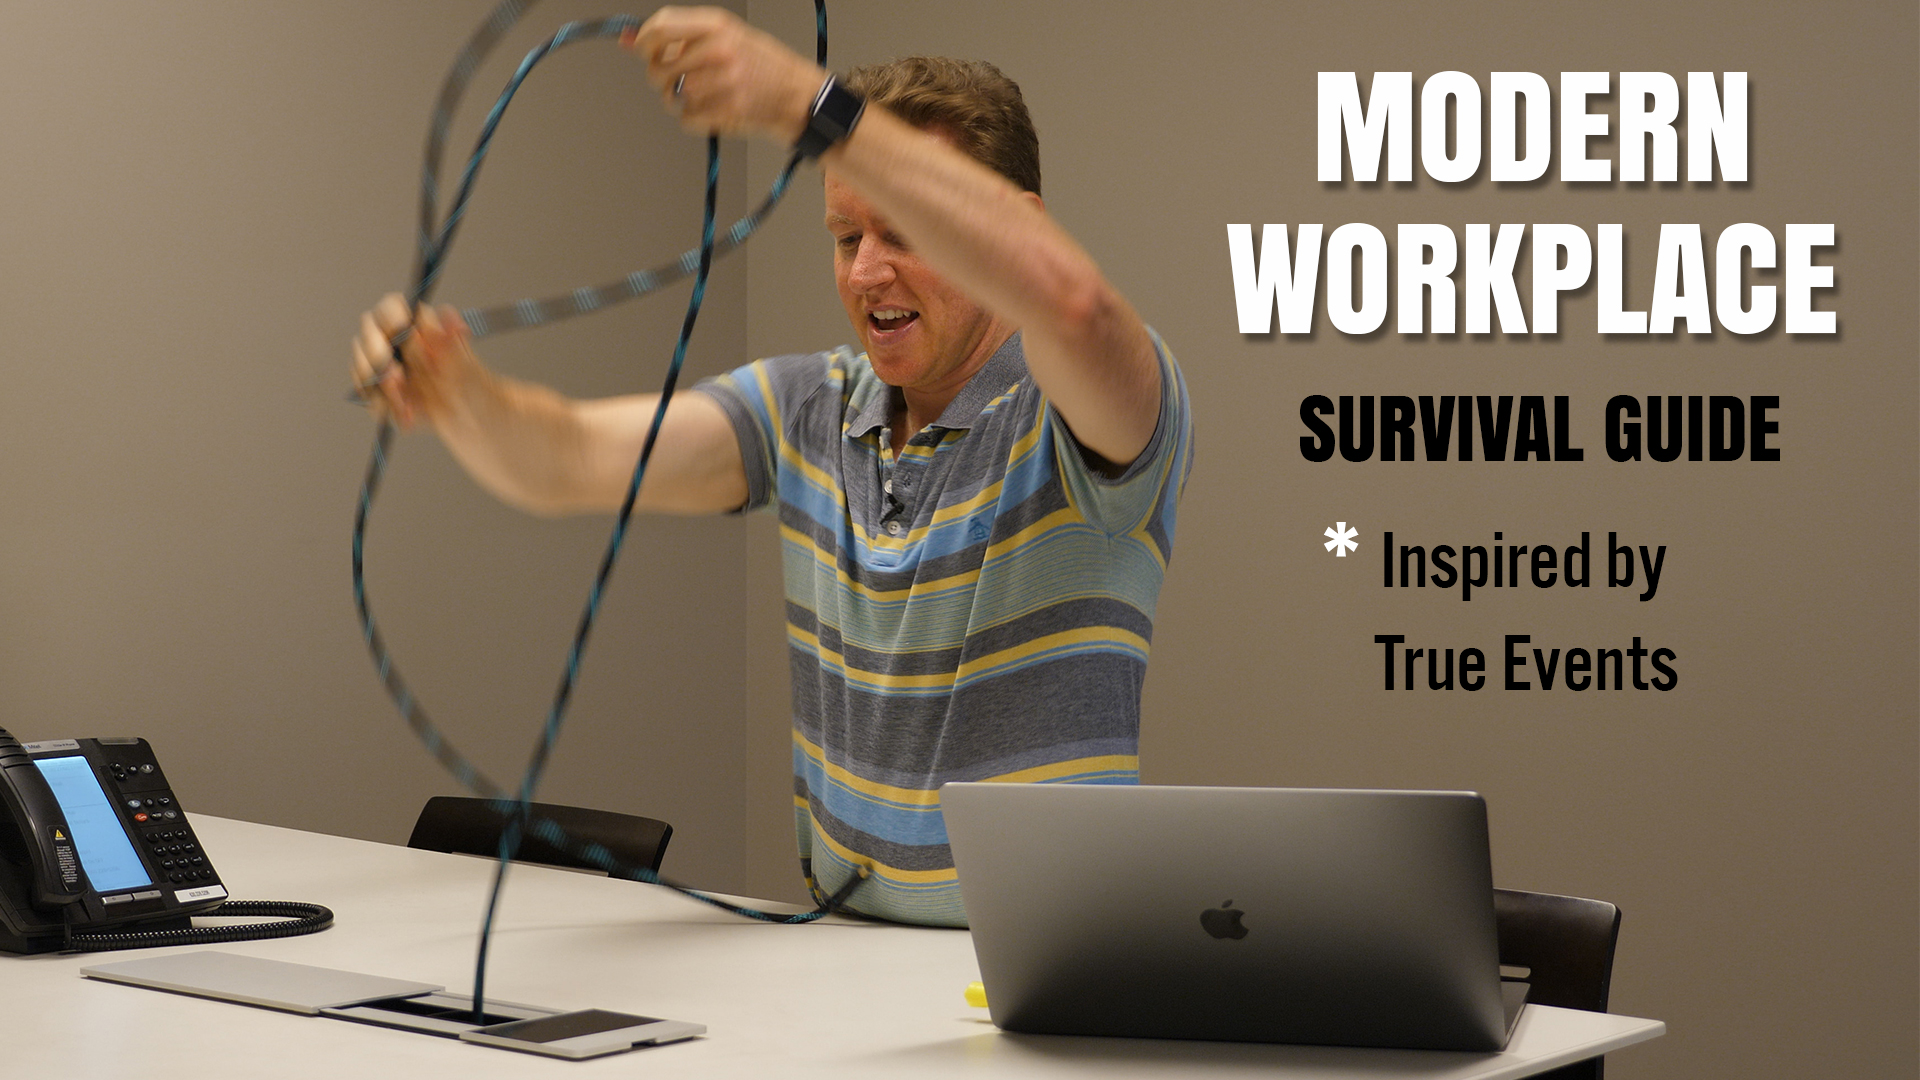 Modern Workplace Survival Guide